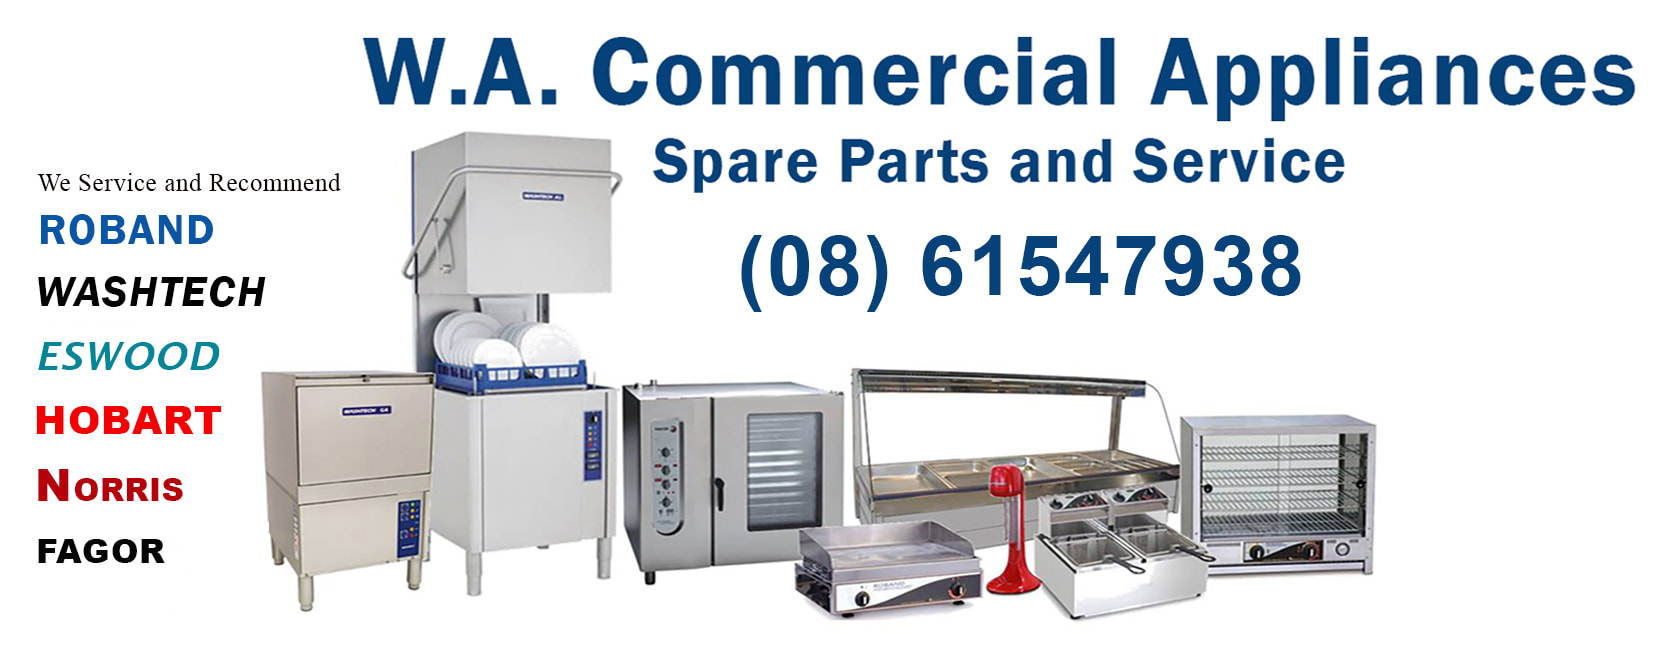 Catering Appliance Parts and Service